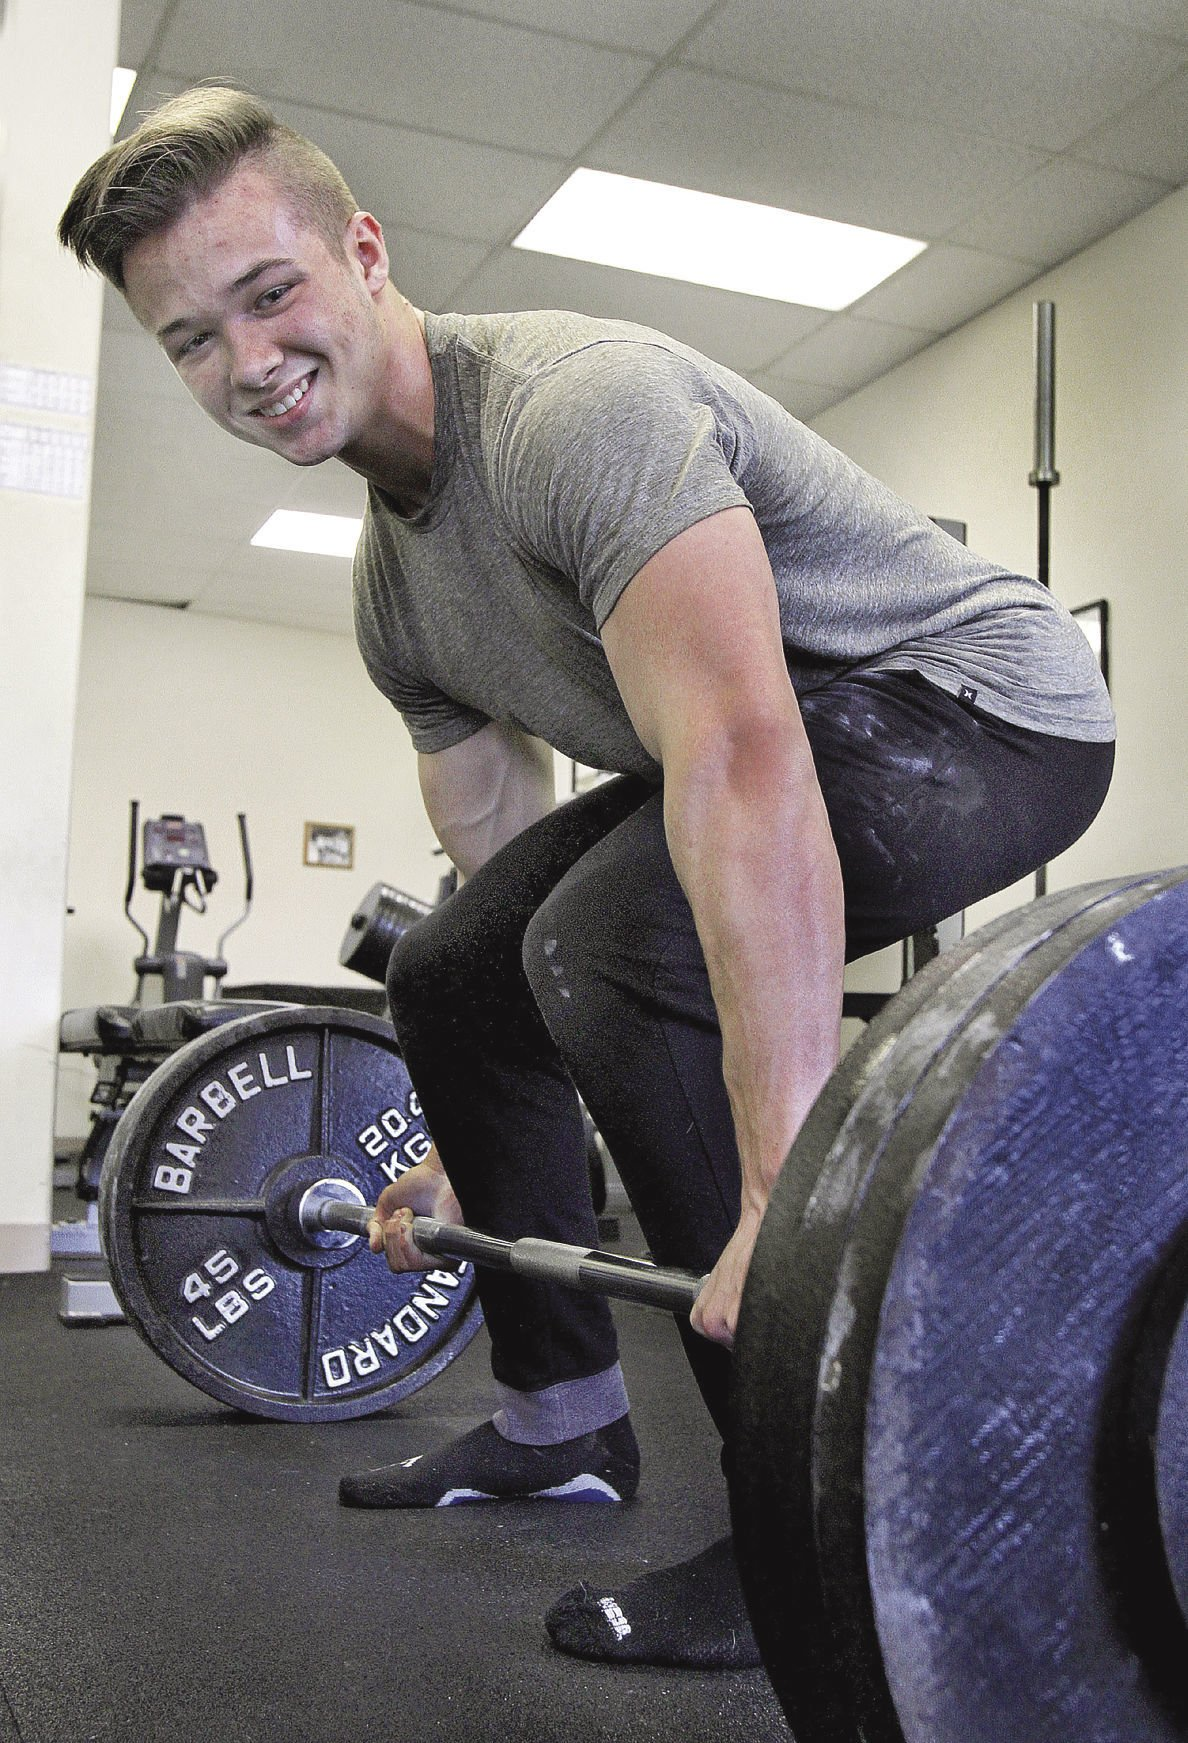 With state title and national ranking, Foster's powerlifting